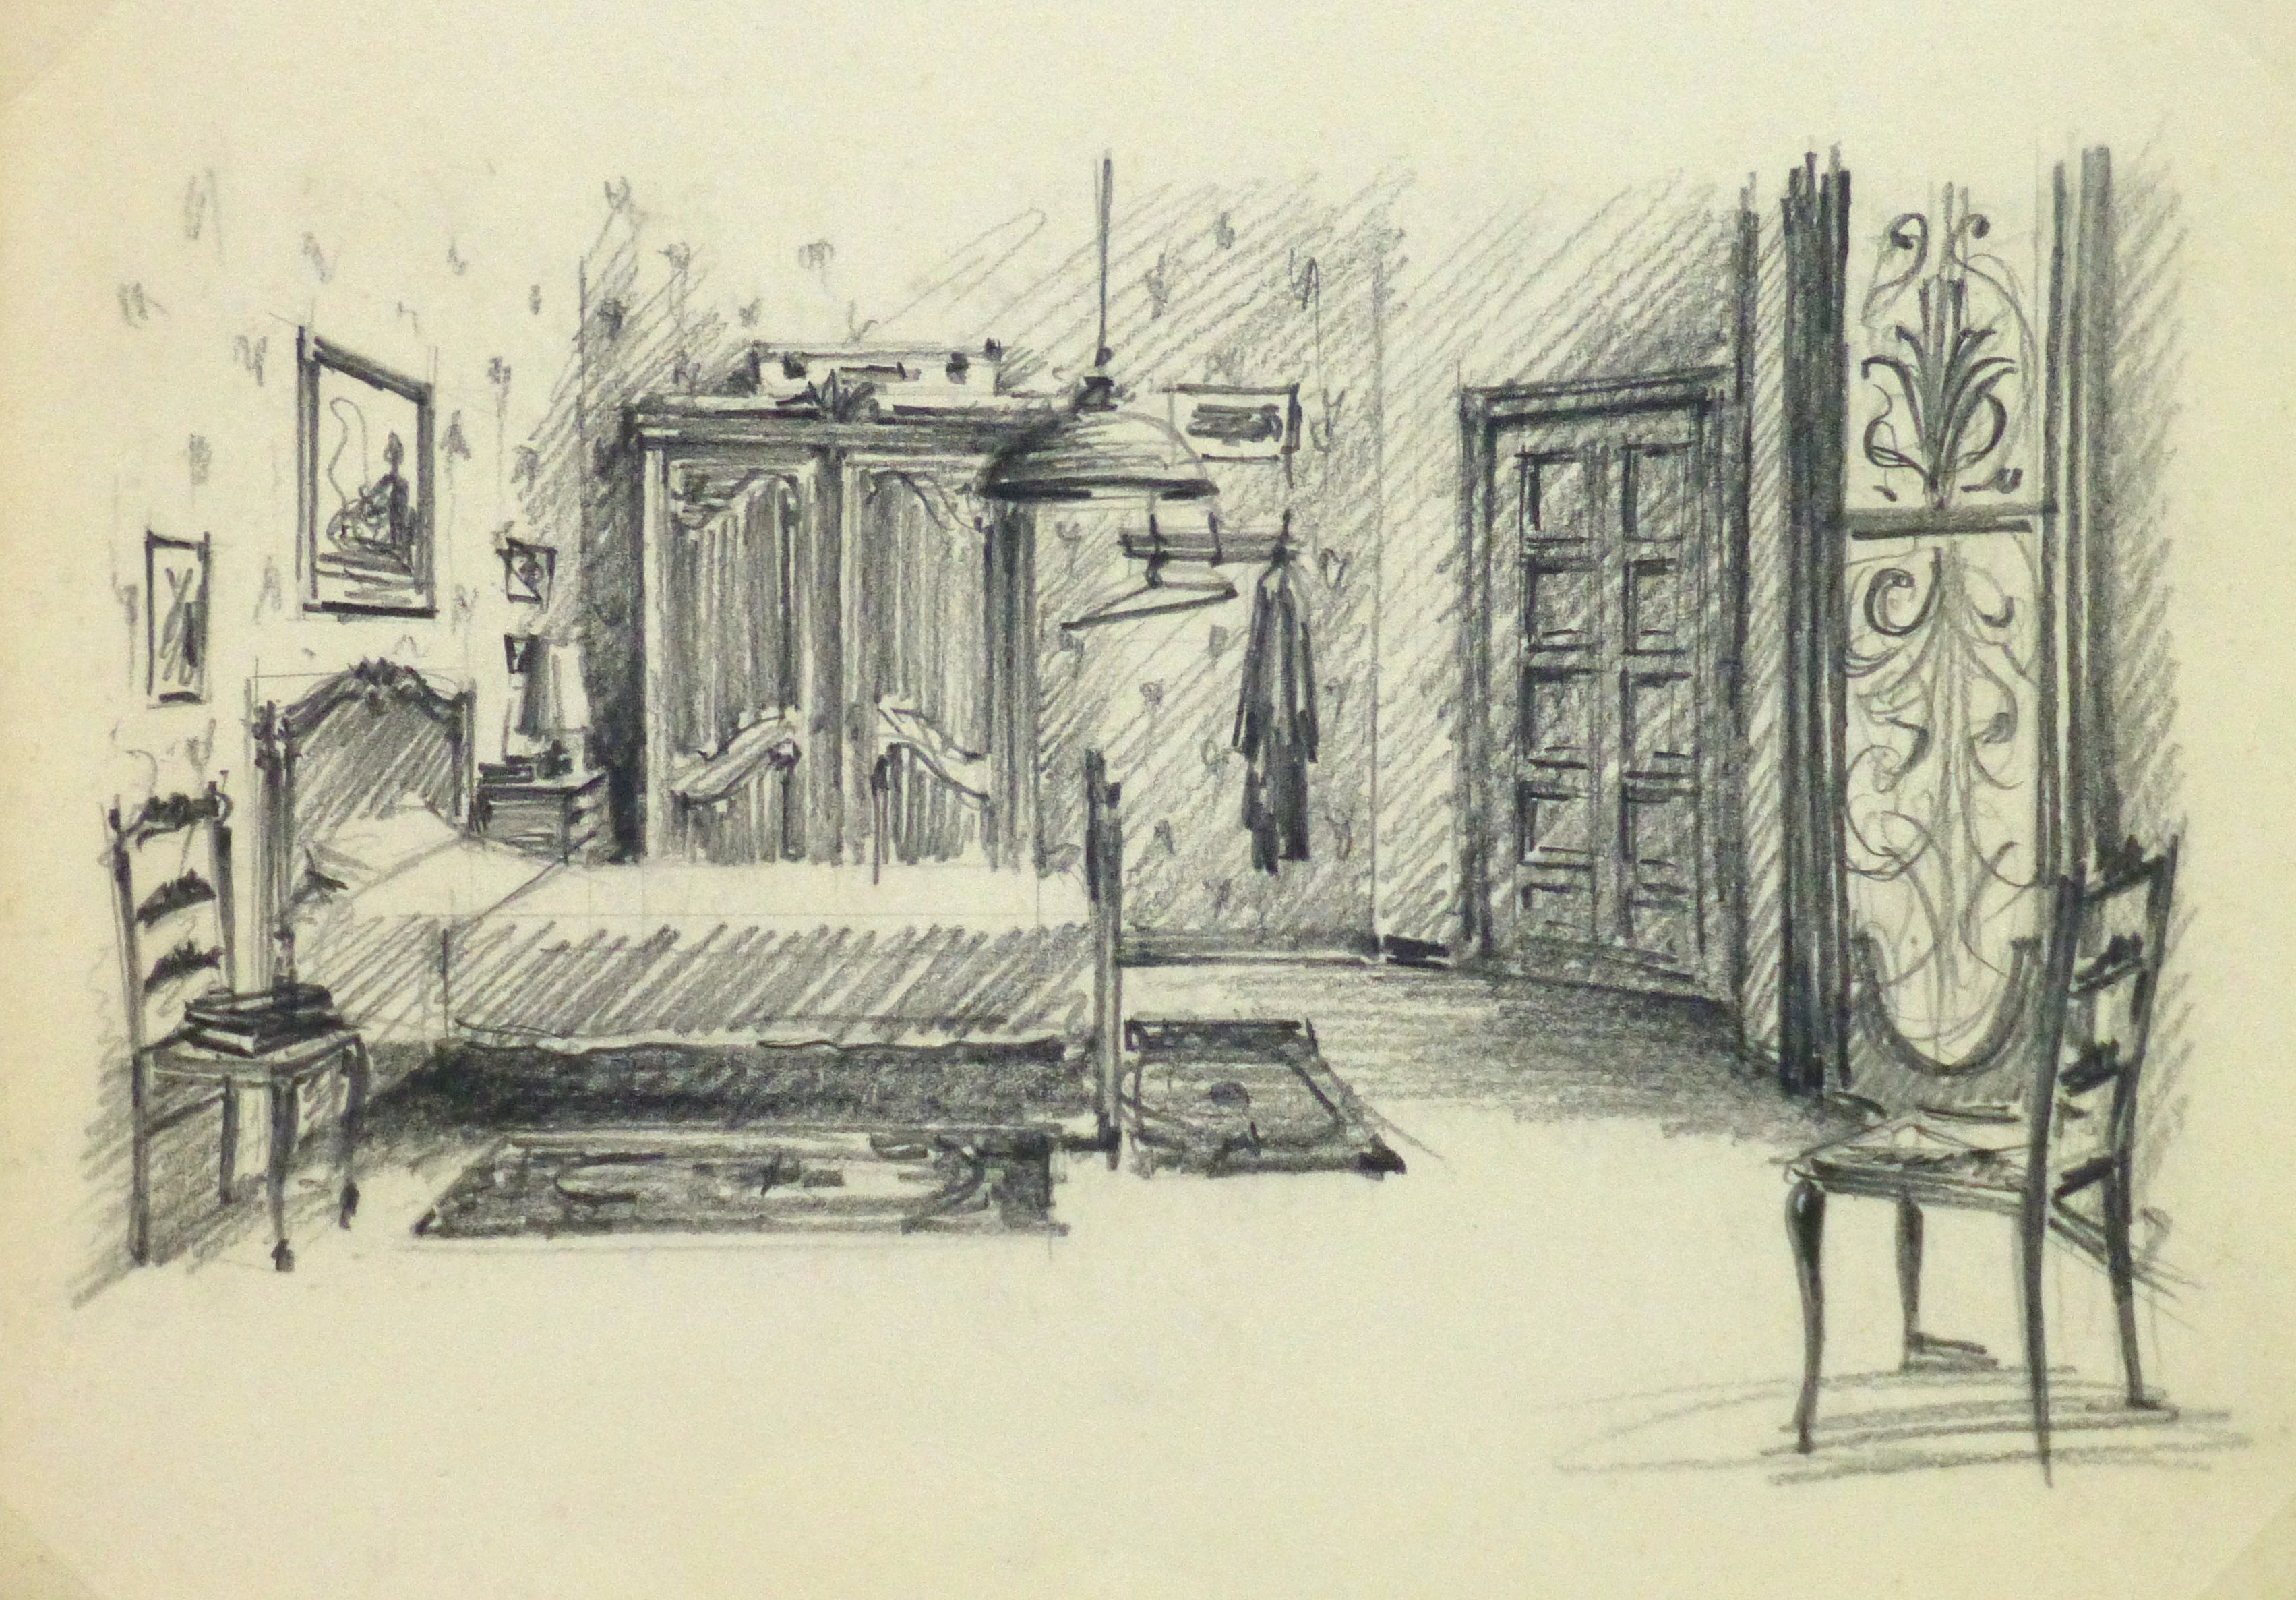 Pencil drawing bedroom interior circa 1950